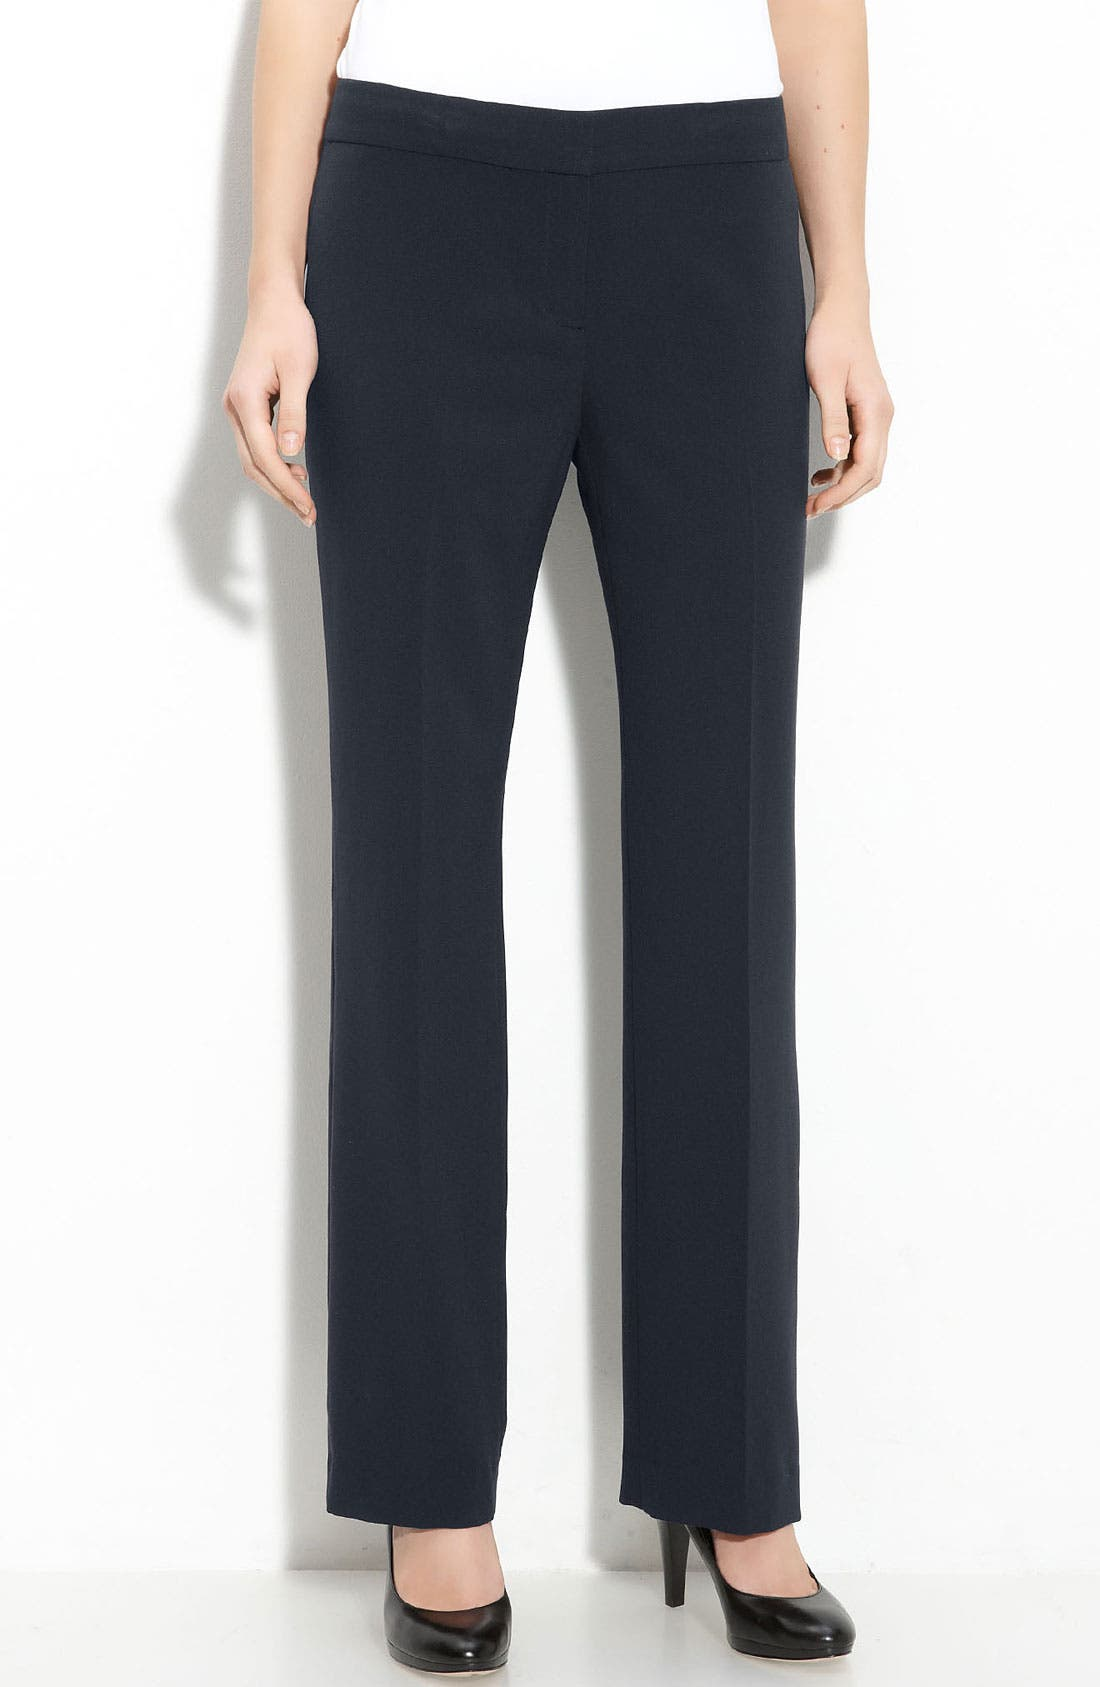 Alternate Image 1 Selected - T Tahari 'Hazel' Straight Leg Pants (Petite)